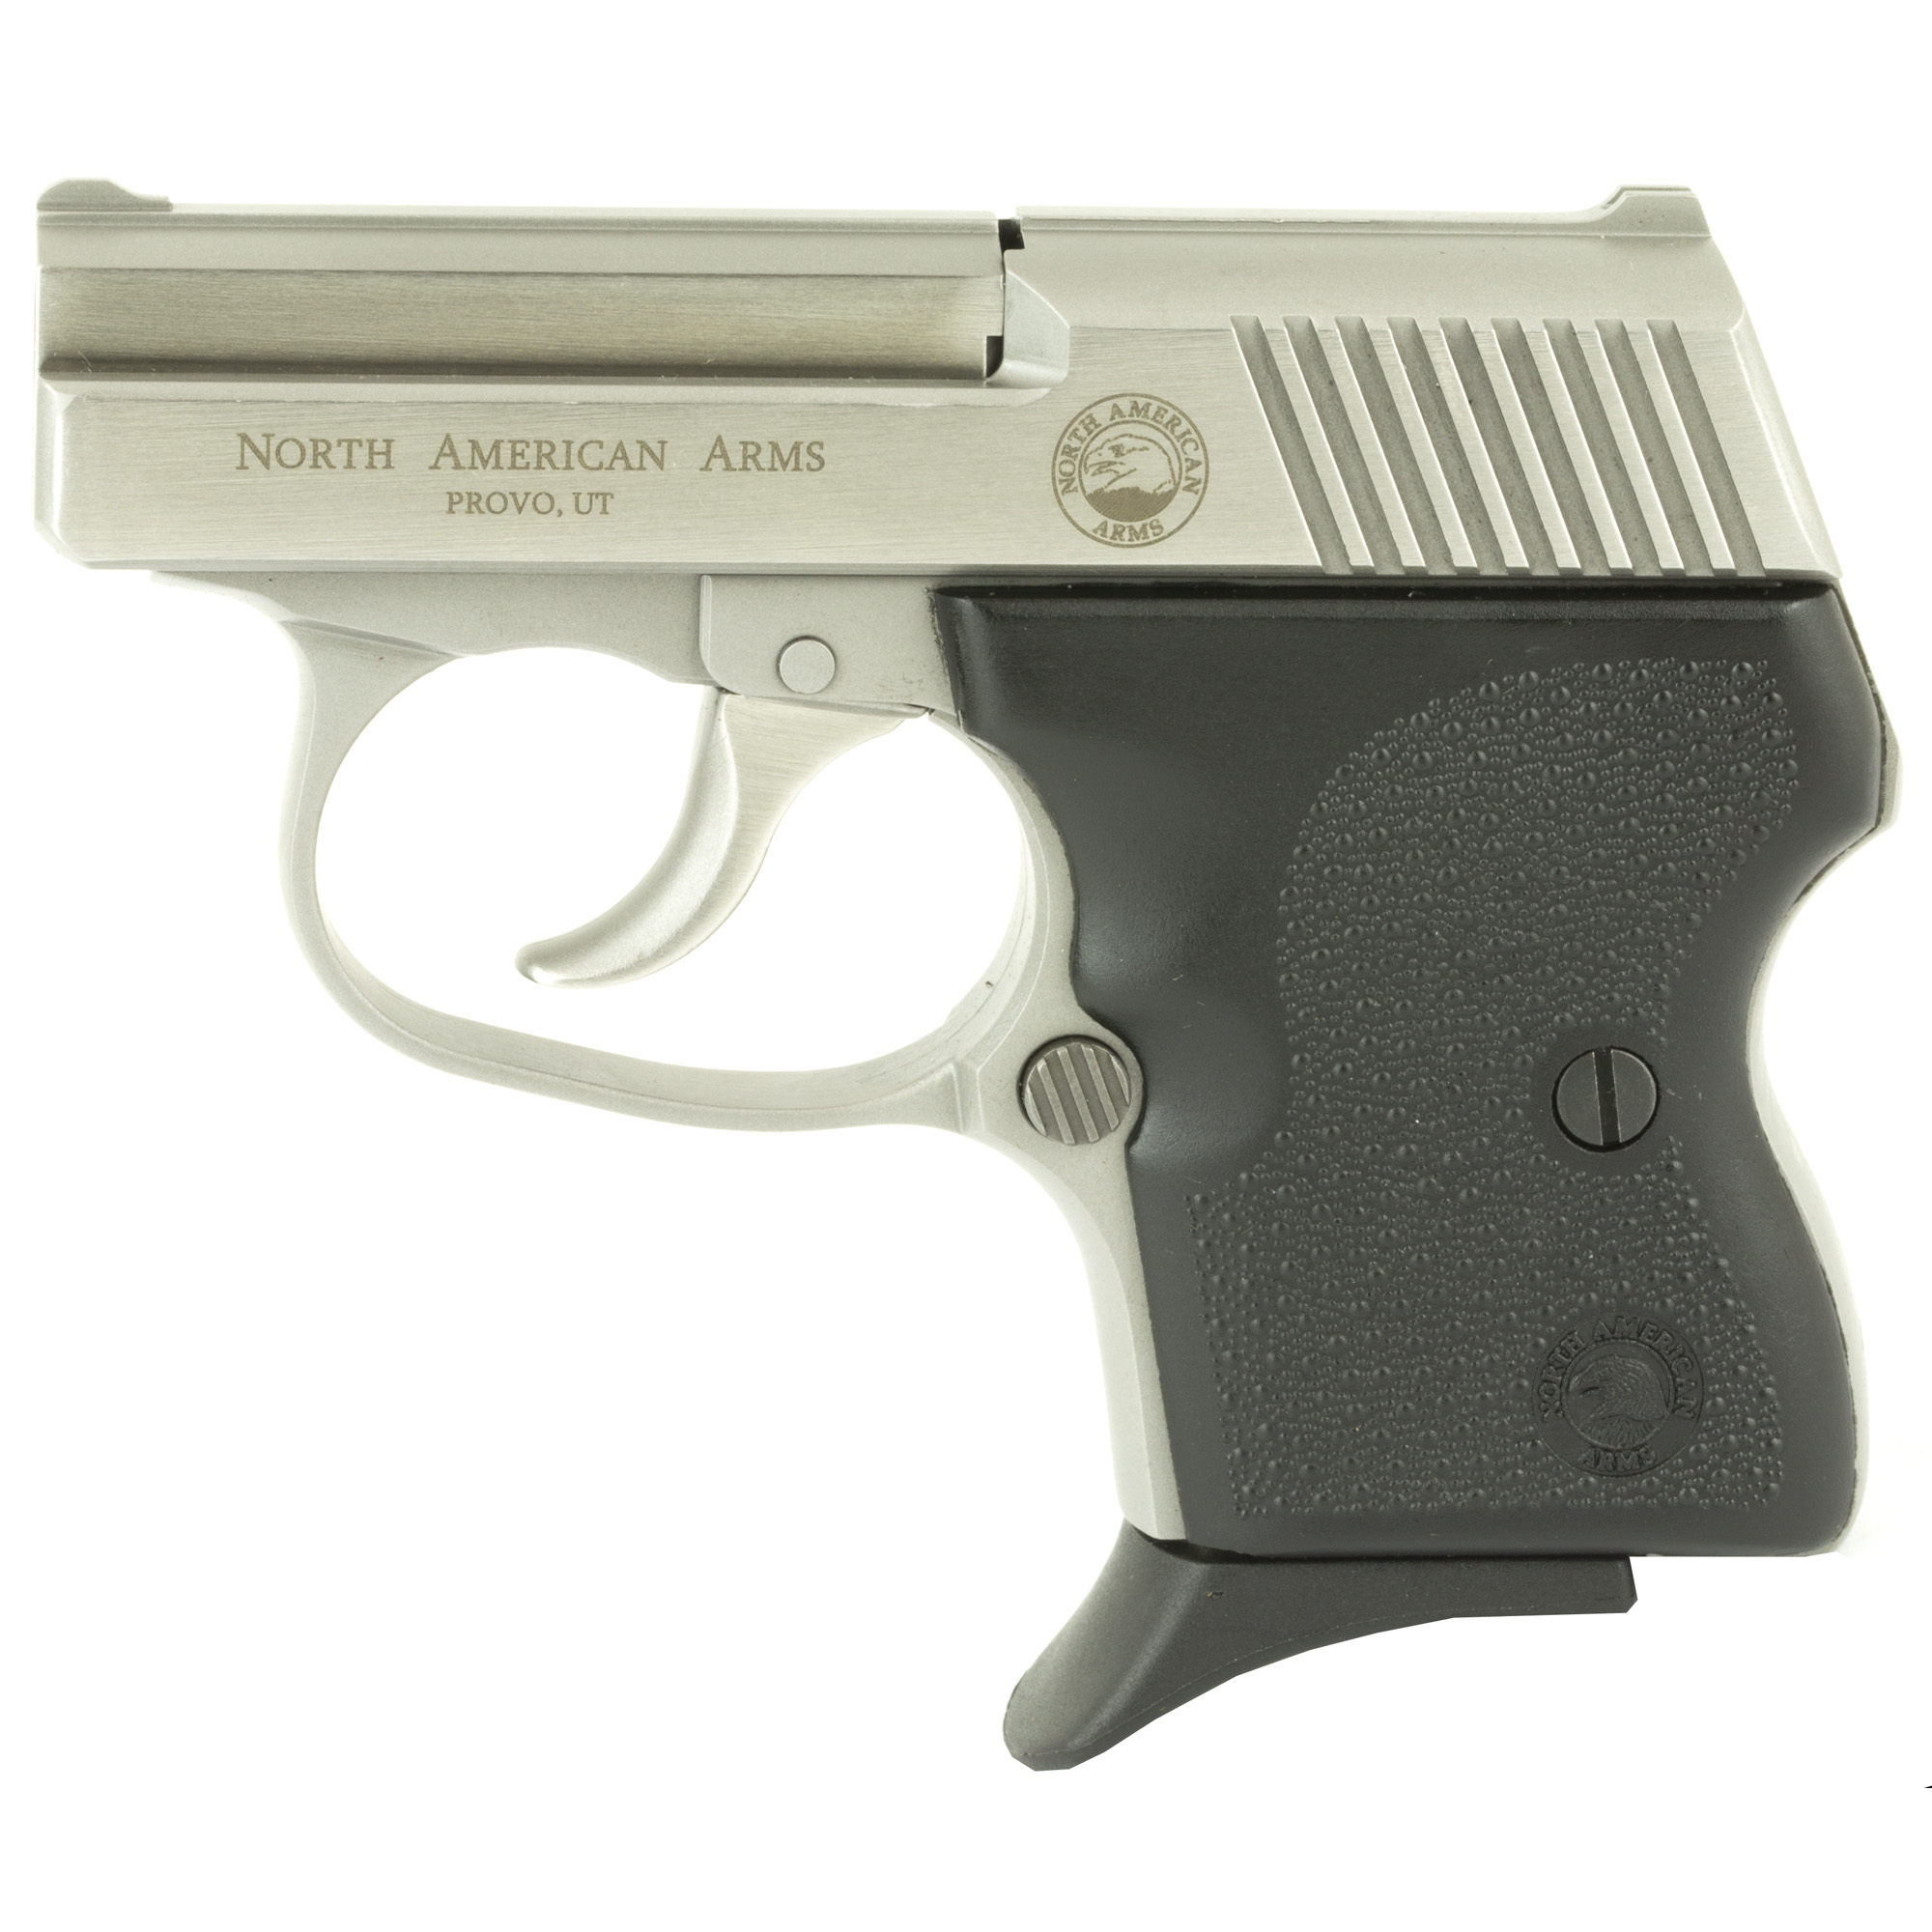 "Introduced in 1997"" the Guardian 32 ACP is one of the few guns that fits comfortably in your pocket. The combination of small size"" high quality"" and great stopping power have made it their most popular Guardian. Over the years"" they have made many subtle improvements to the design"" based in part on the many suggestions they receive from their customers. The result is an extremely high quality gun that's Convenient"" Reliable"" and very Effective. They stand behind it and back it up with our lifetime warranty. Includes one 6-round magazine."